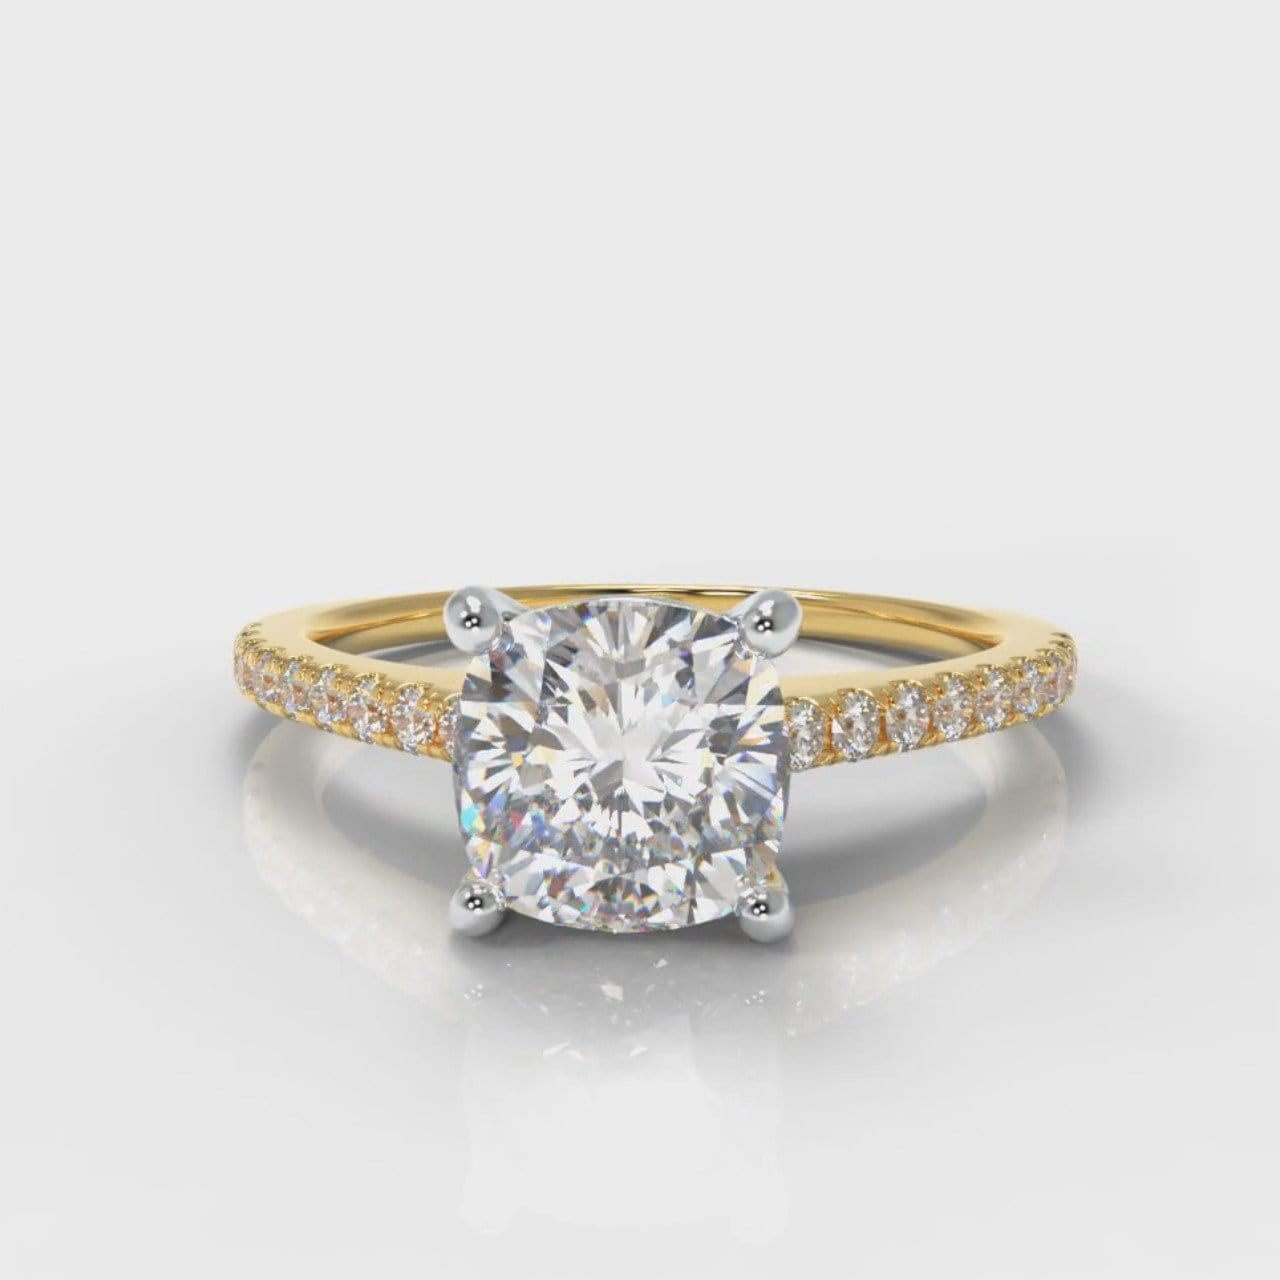 Petite Micropavé Cushion Cut Diamond Engagement Ring - Yellow Gold